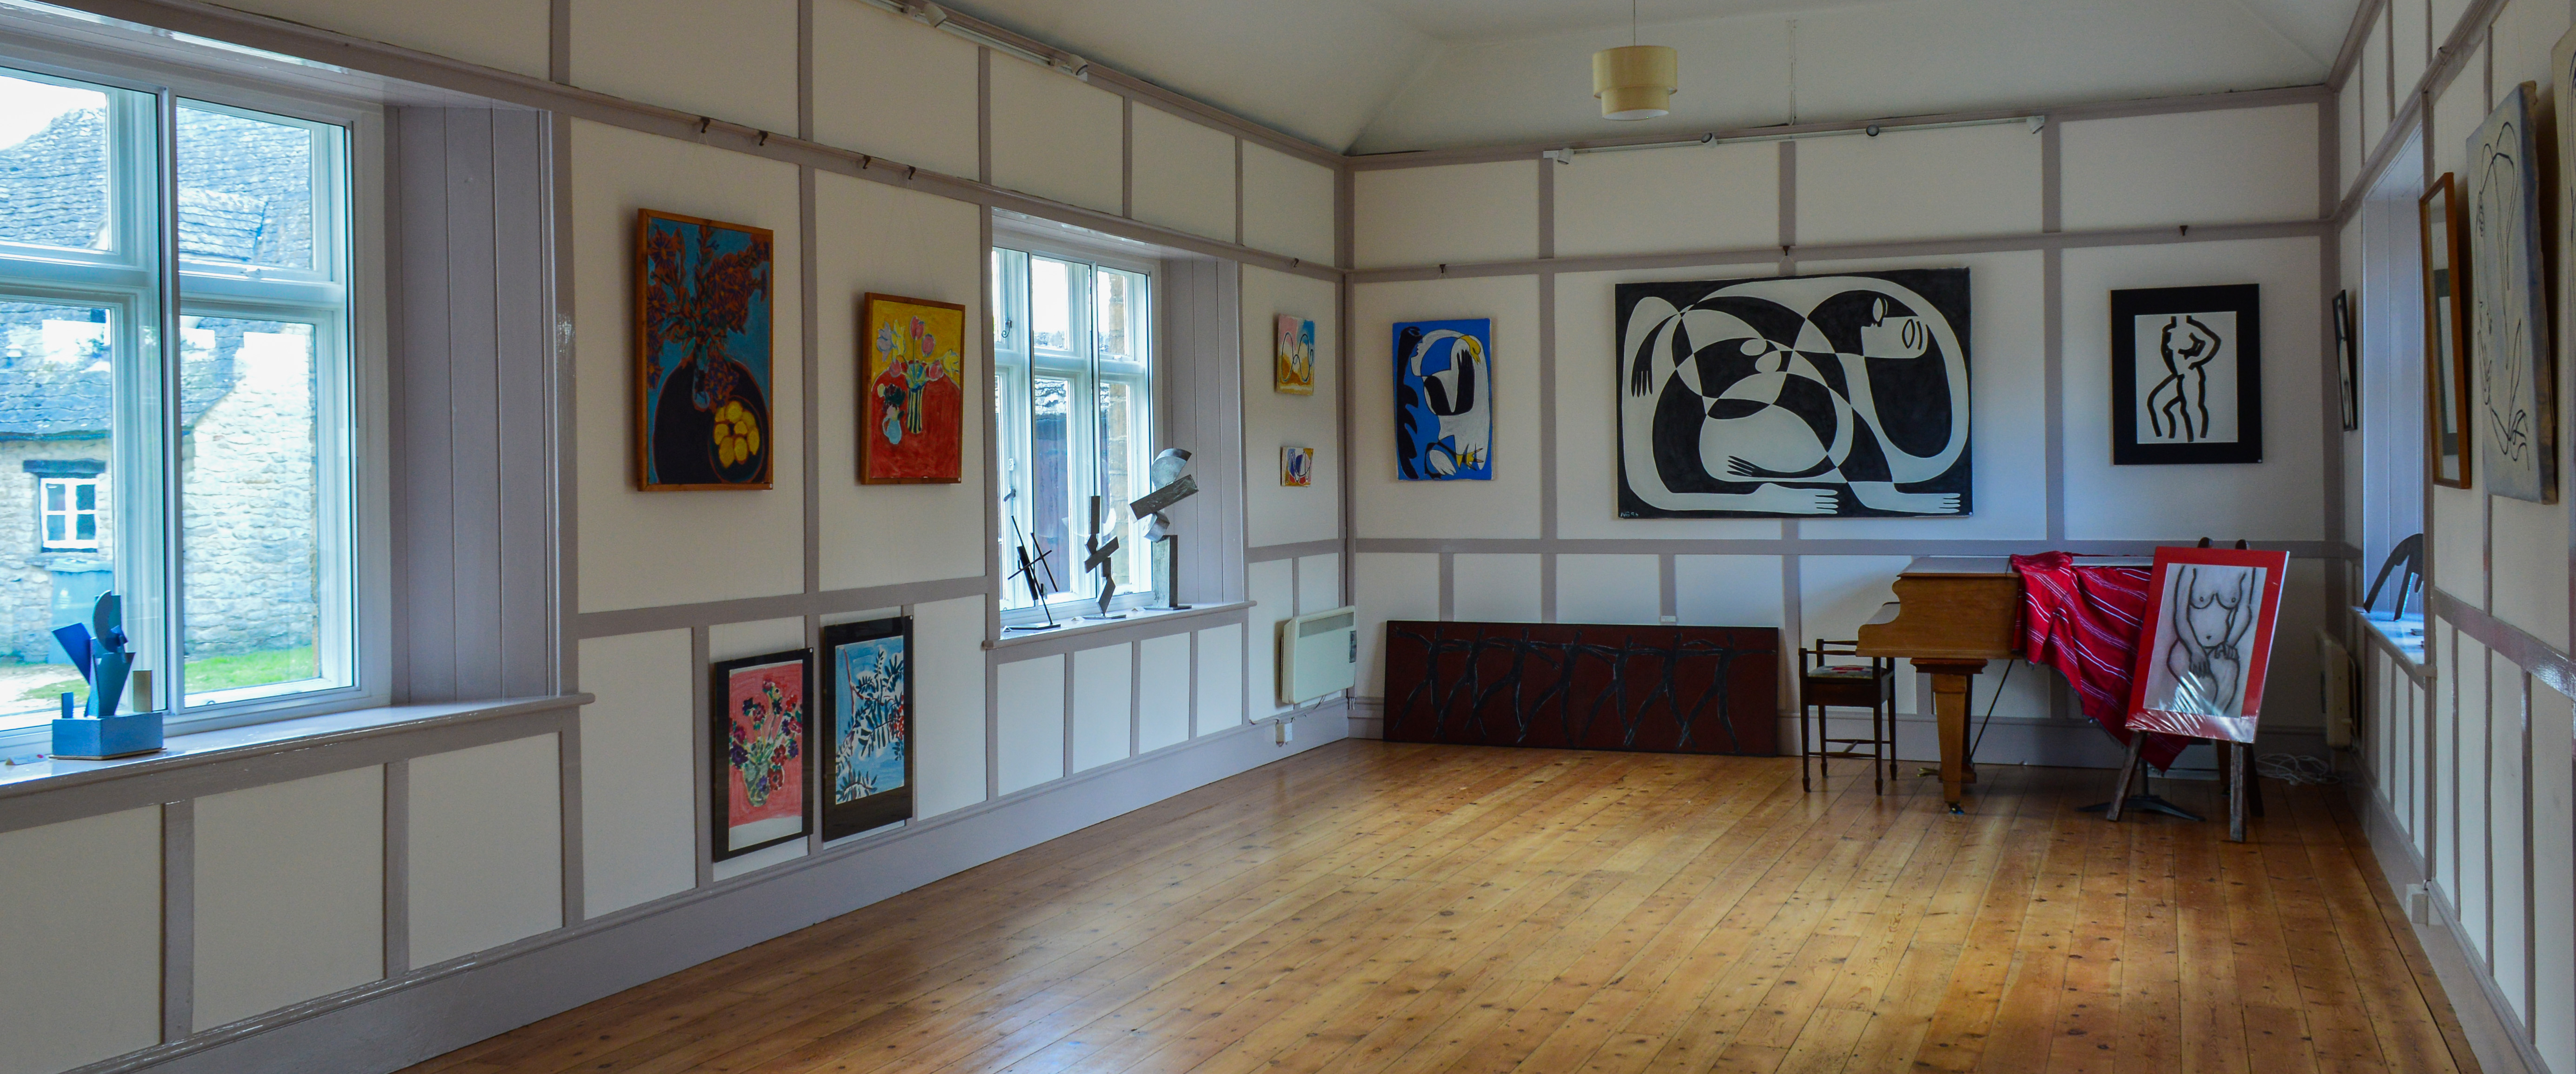 About the Music Room | The Music Room Eynsham